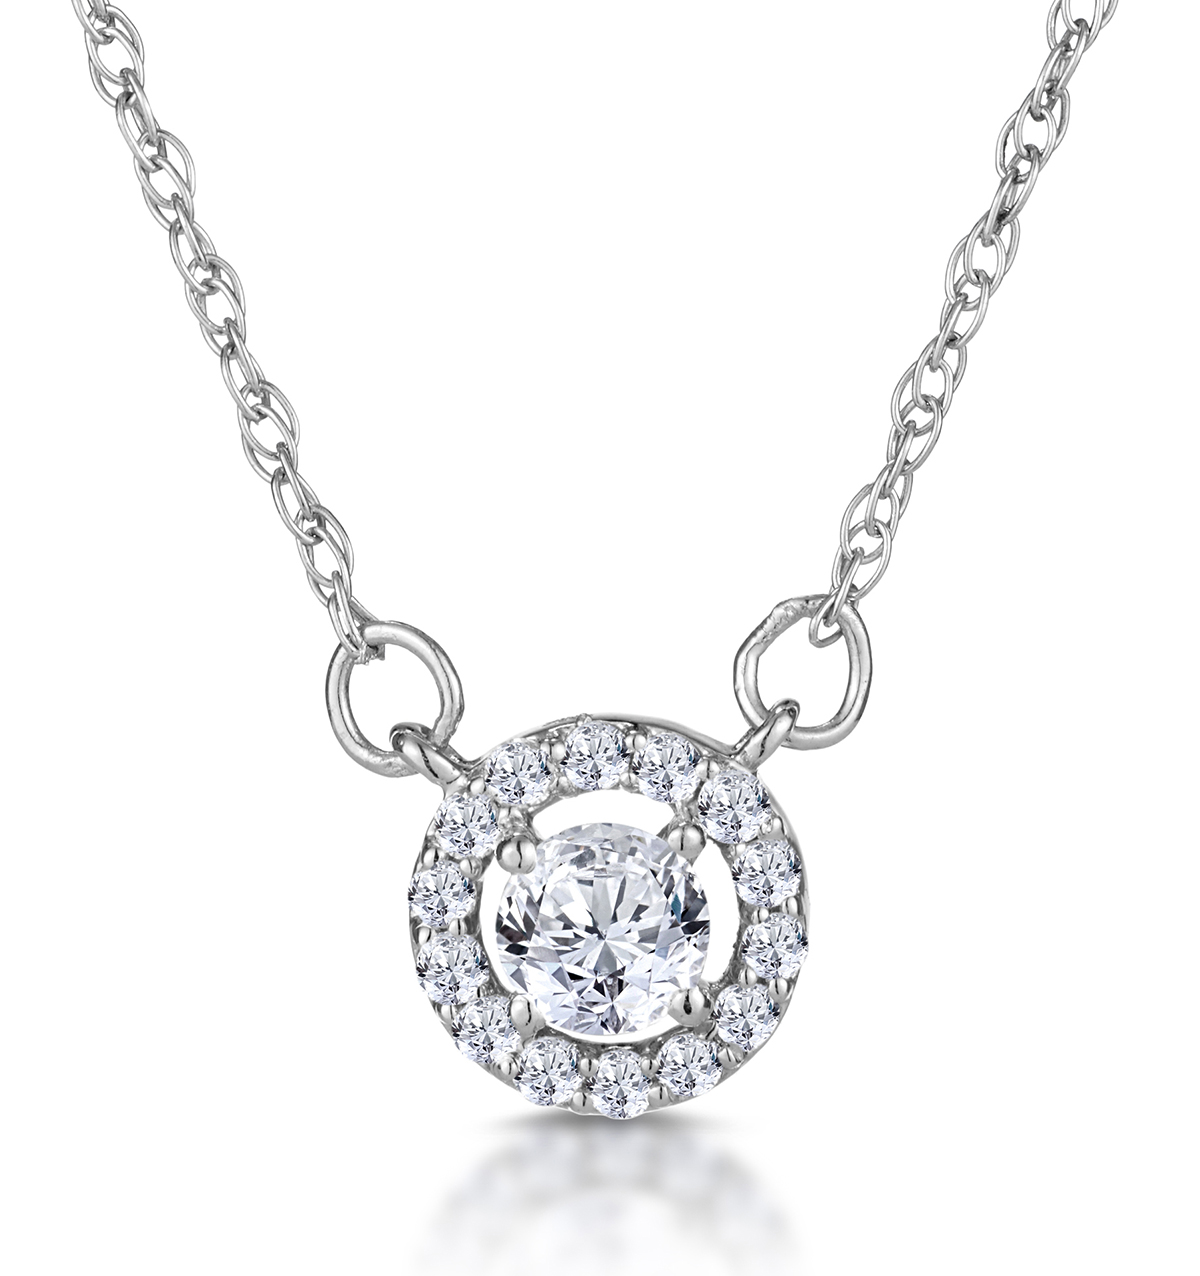 DIAMOND HALO NECKLACE IN 9K WHITE GOLD - ASTERIA COLLECTION